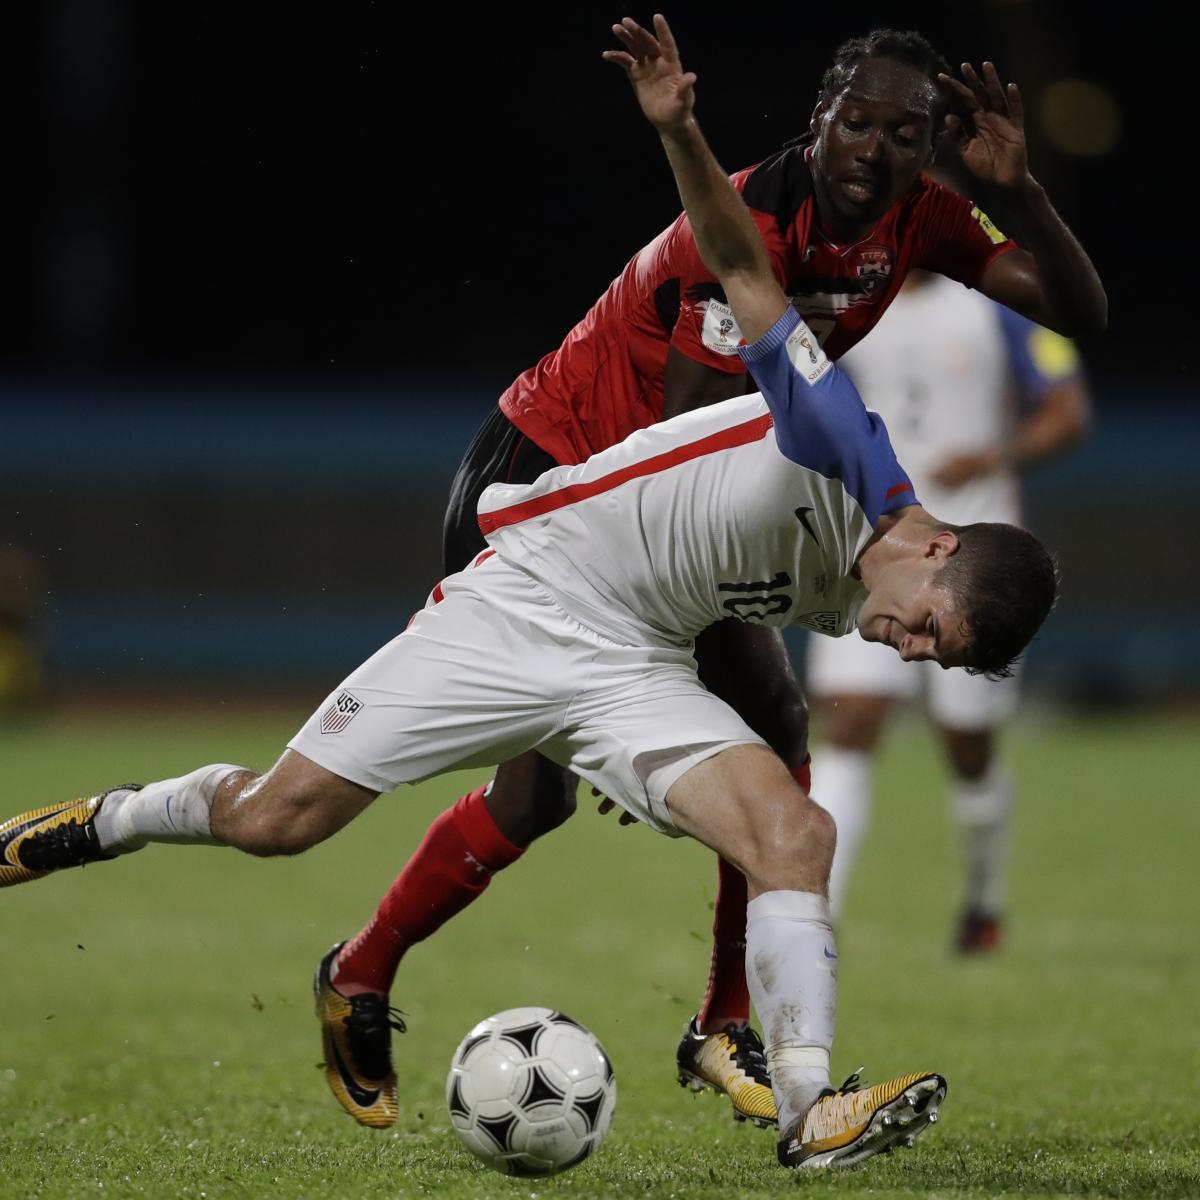 USA Fails to Qualify for 2018 World Cup with 2-1 Loss to Trinidad and Tobago